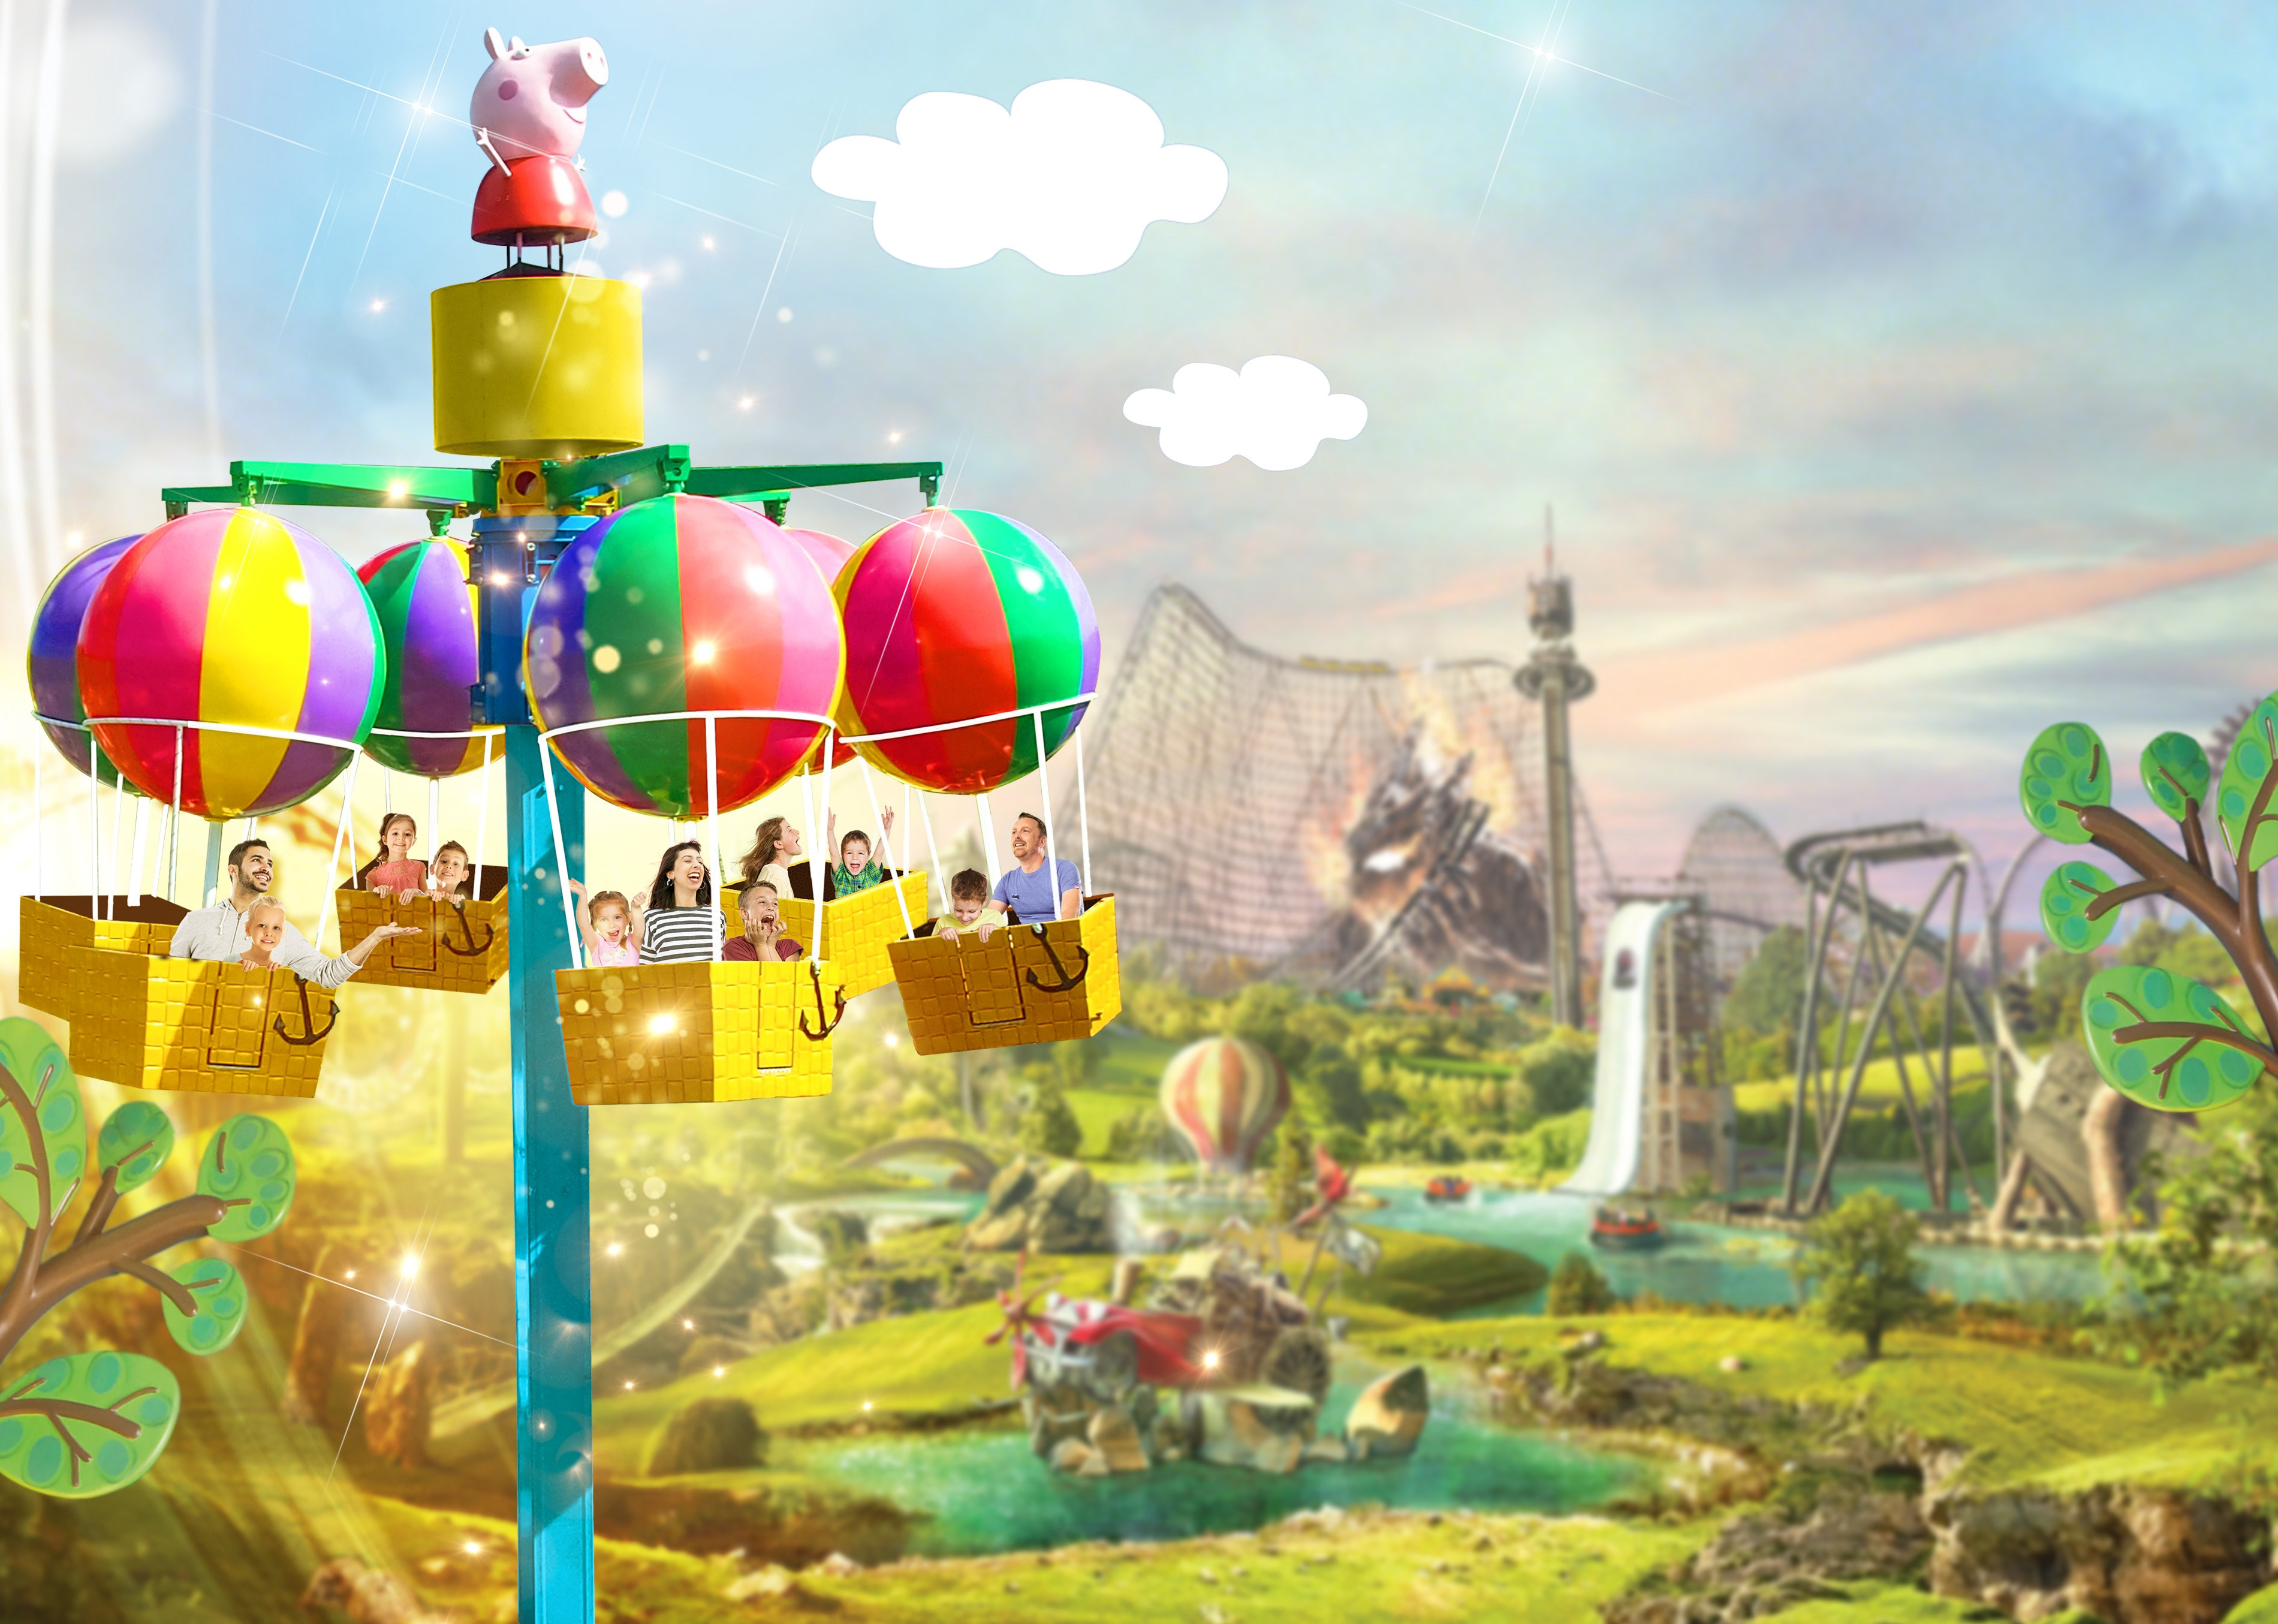 Heideparkresort Peppapig Balloon Ride 2020